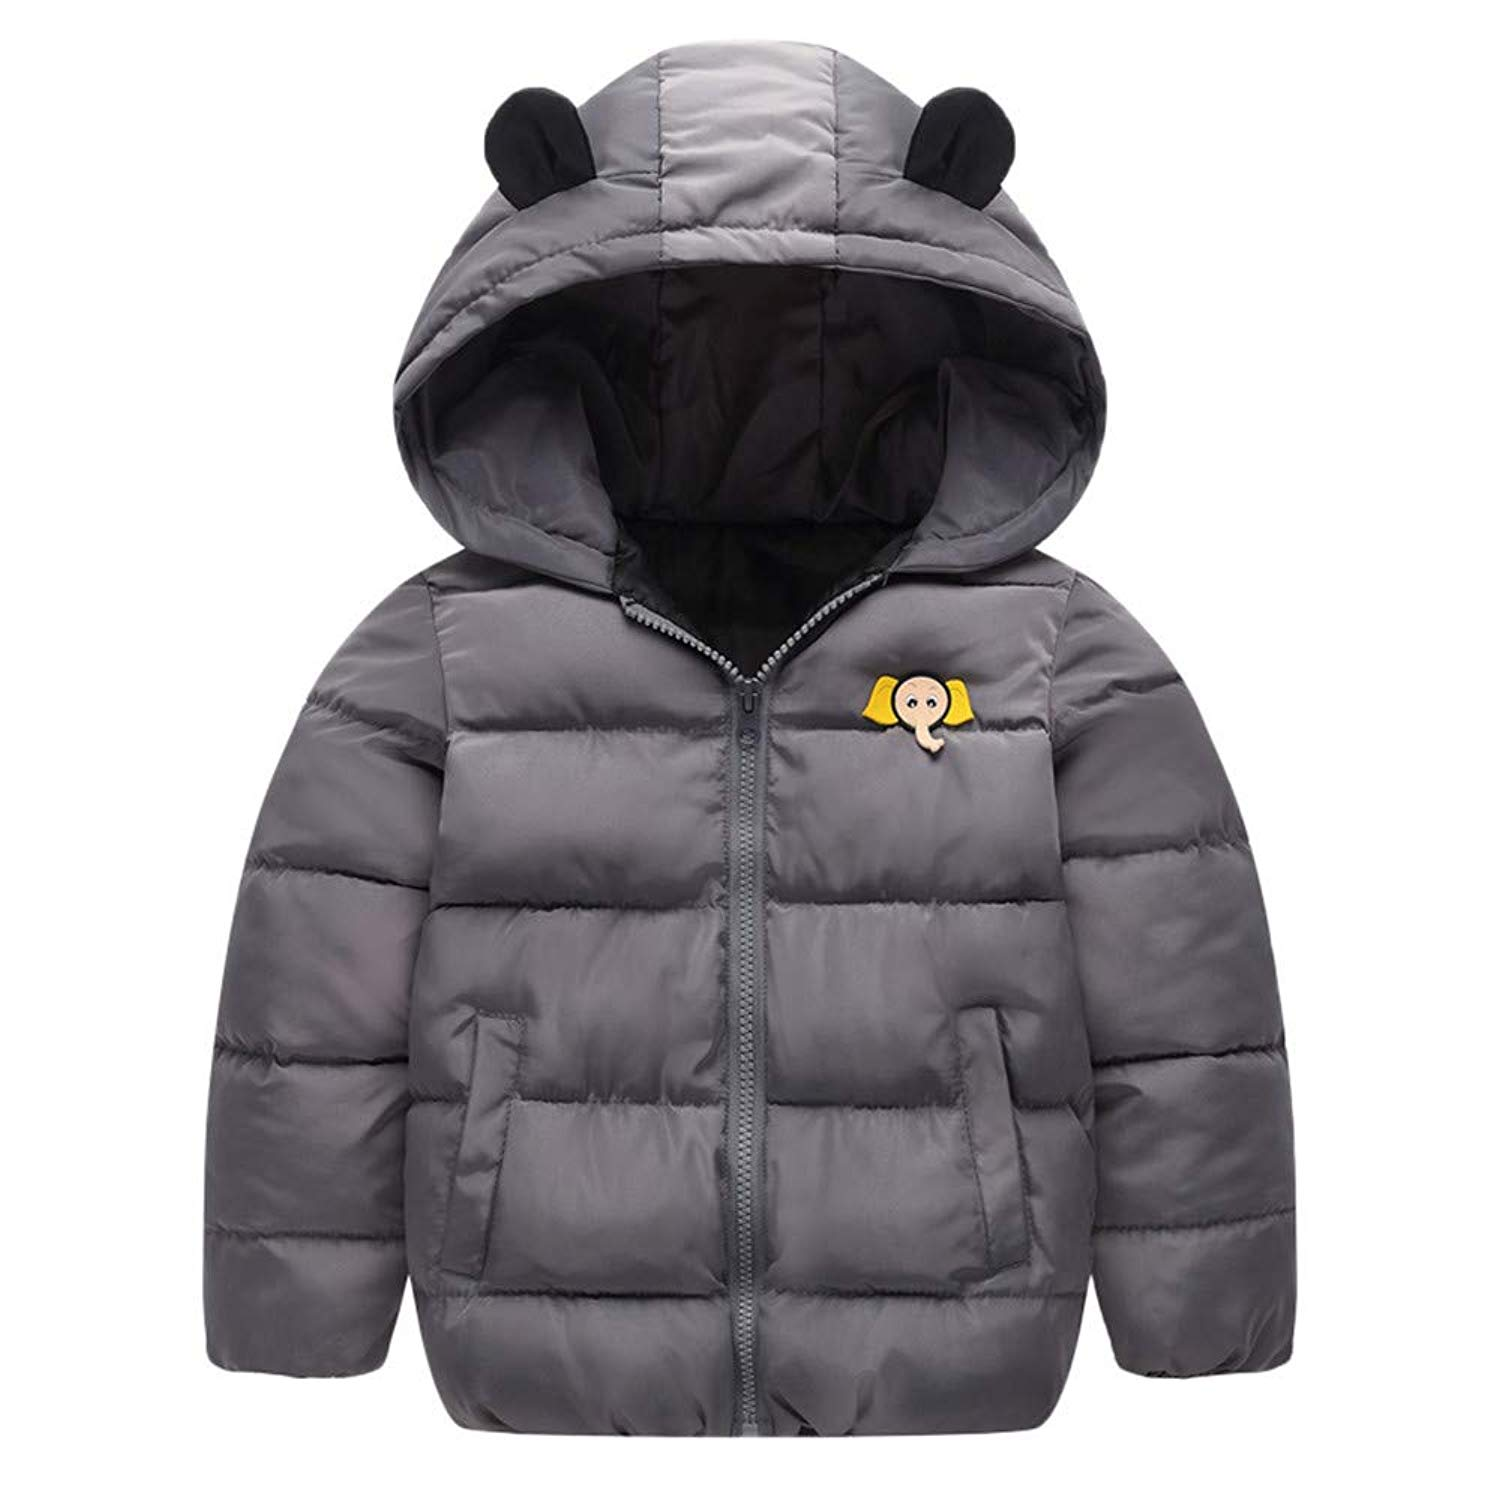 a883ee518 Get Quotations · Outtop(TM) Baby Boy Girl Down Jackets Coats Toddler Kids  Winter Lightweight Cartoon Hooded